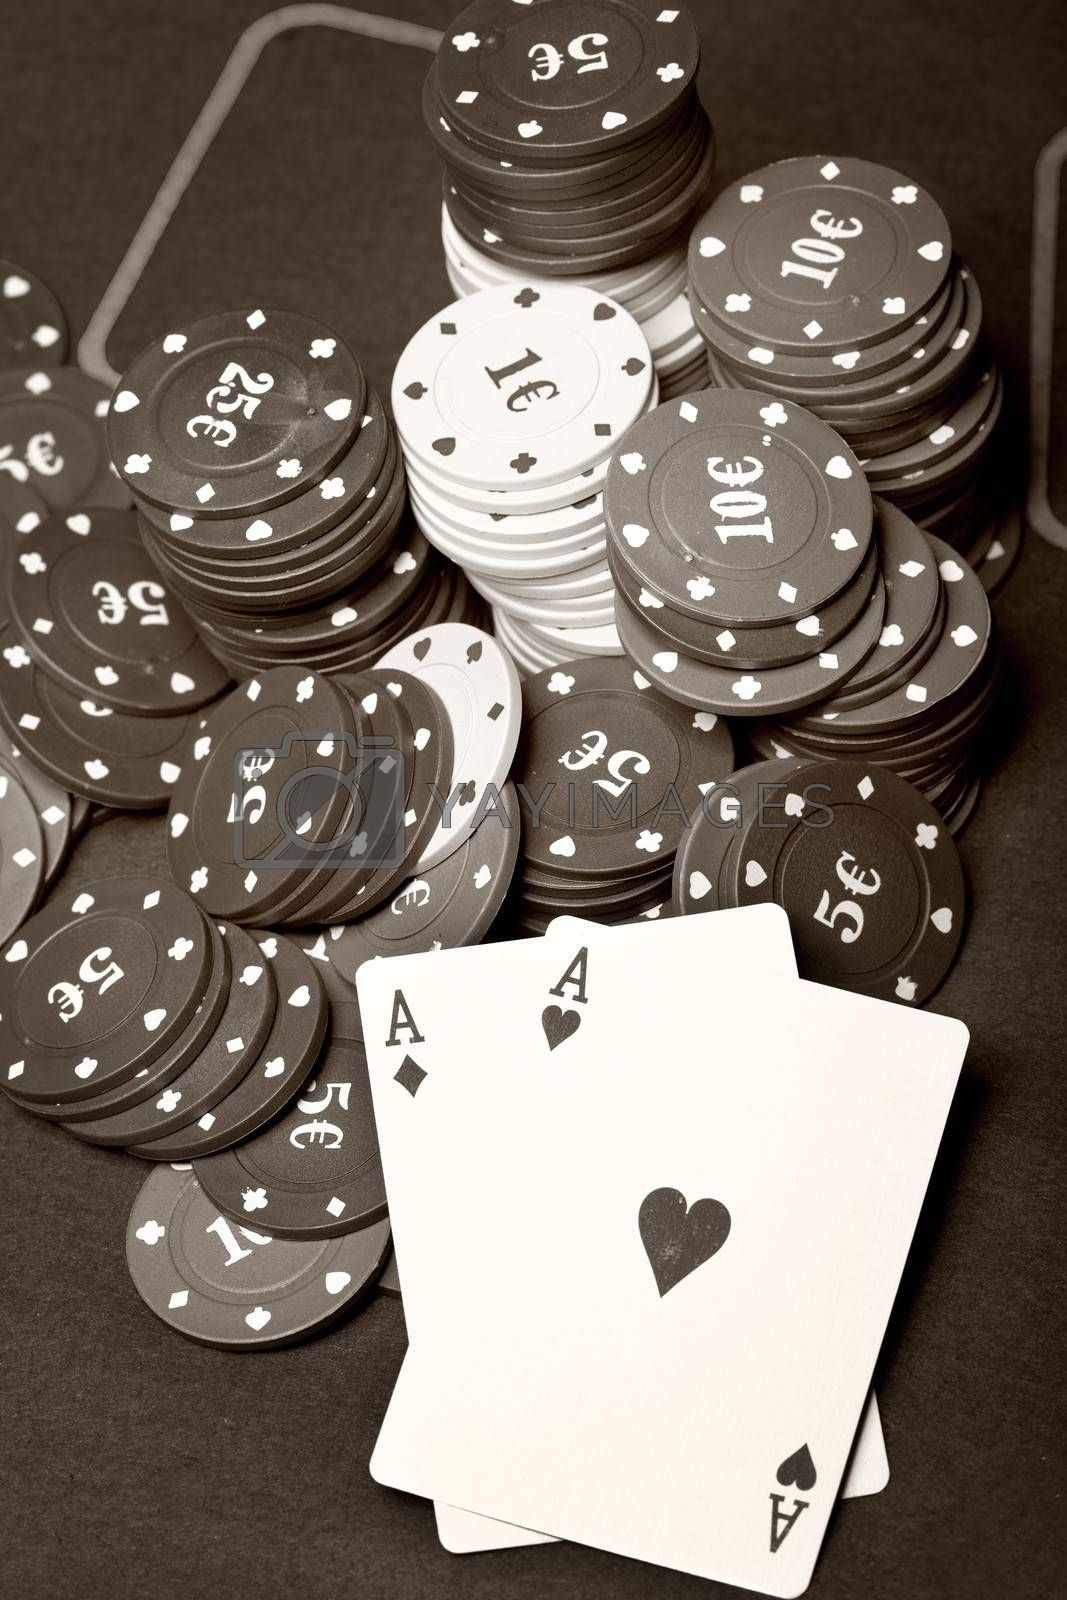 Old poker cards and chips. Sepia toned